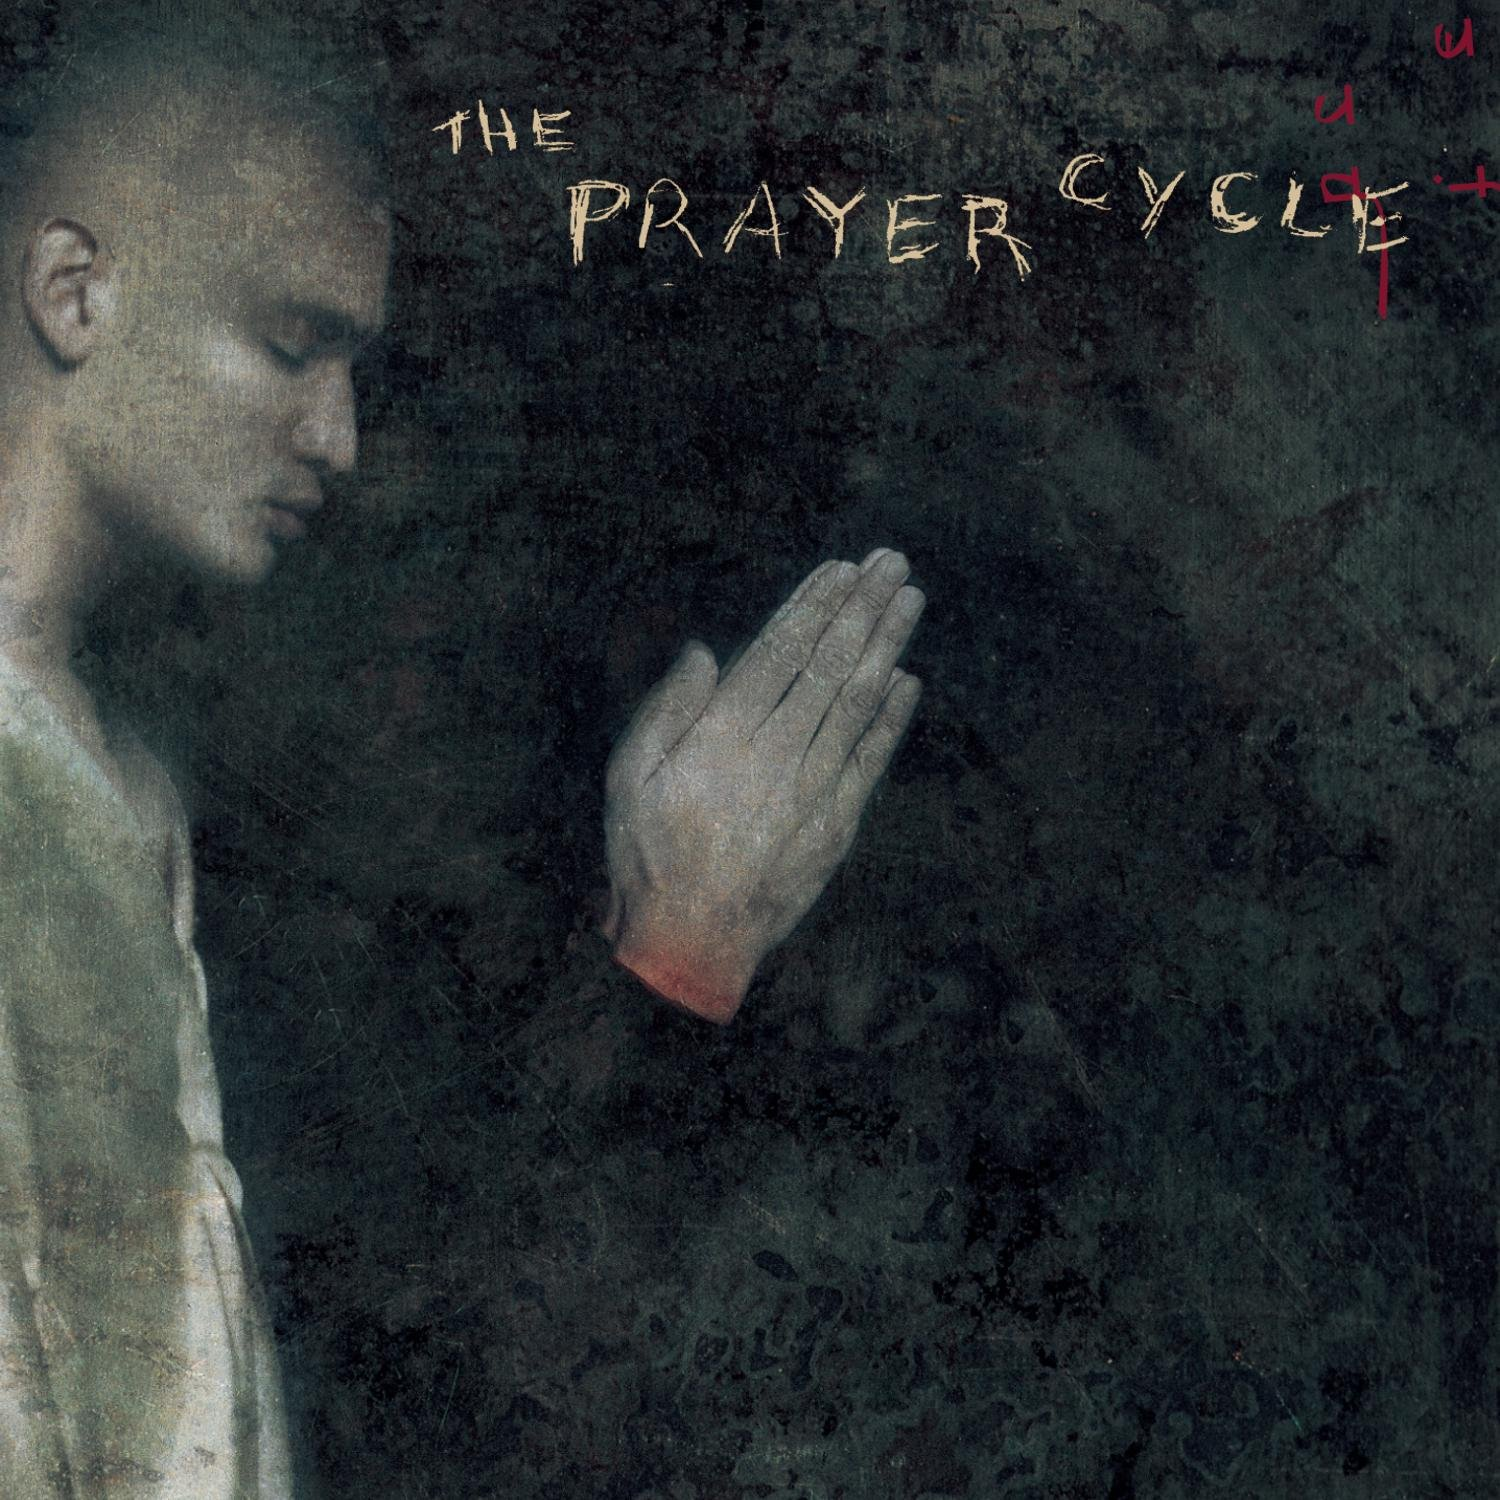 The Prayer Cycle by Sony Classical